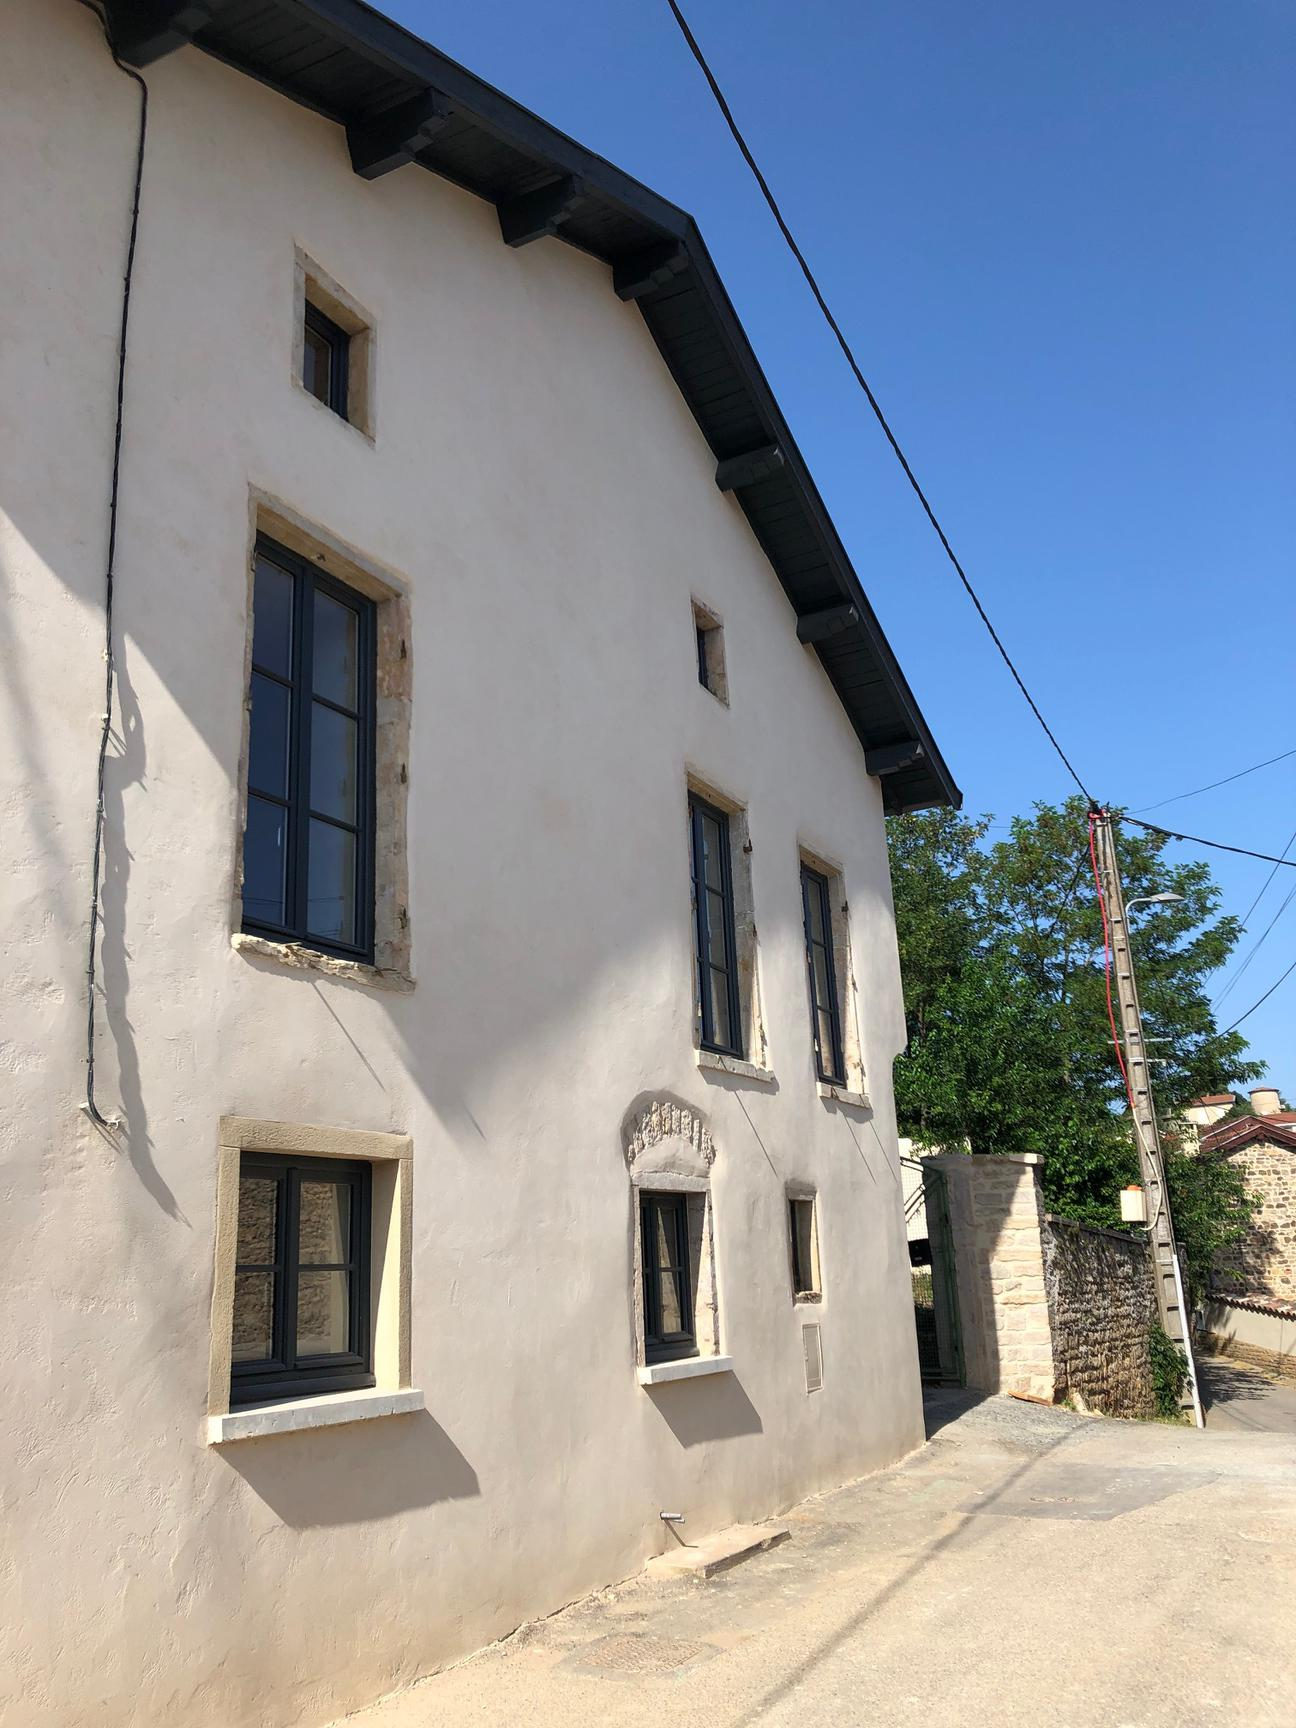 MAISON ANCIENNE RENOVEE 4/5 CHAMBRES,